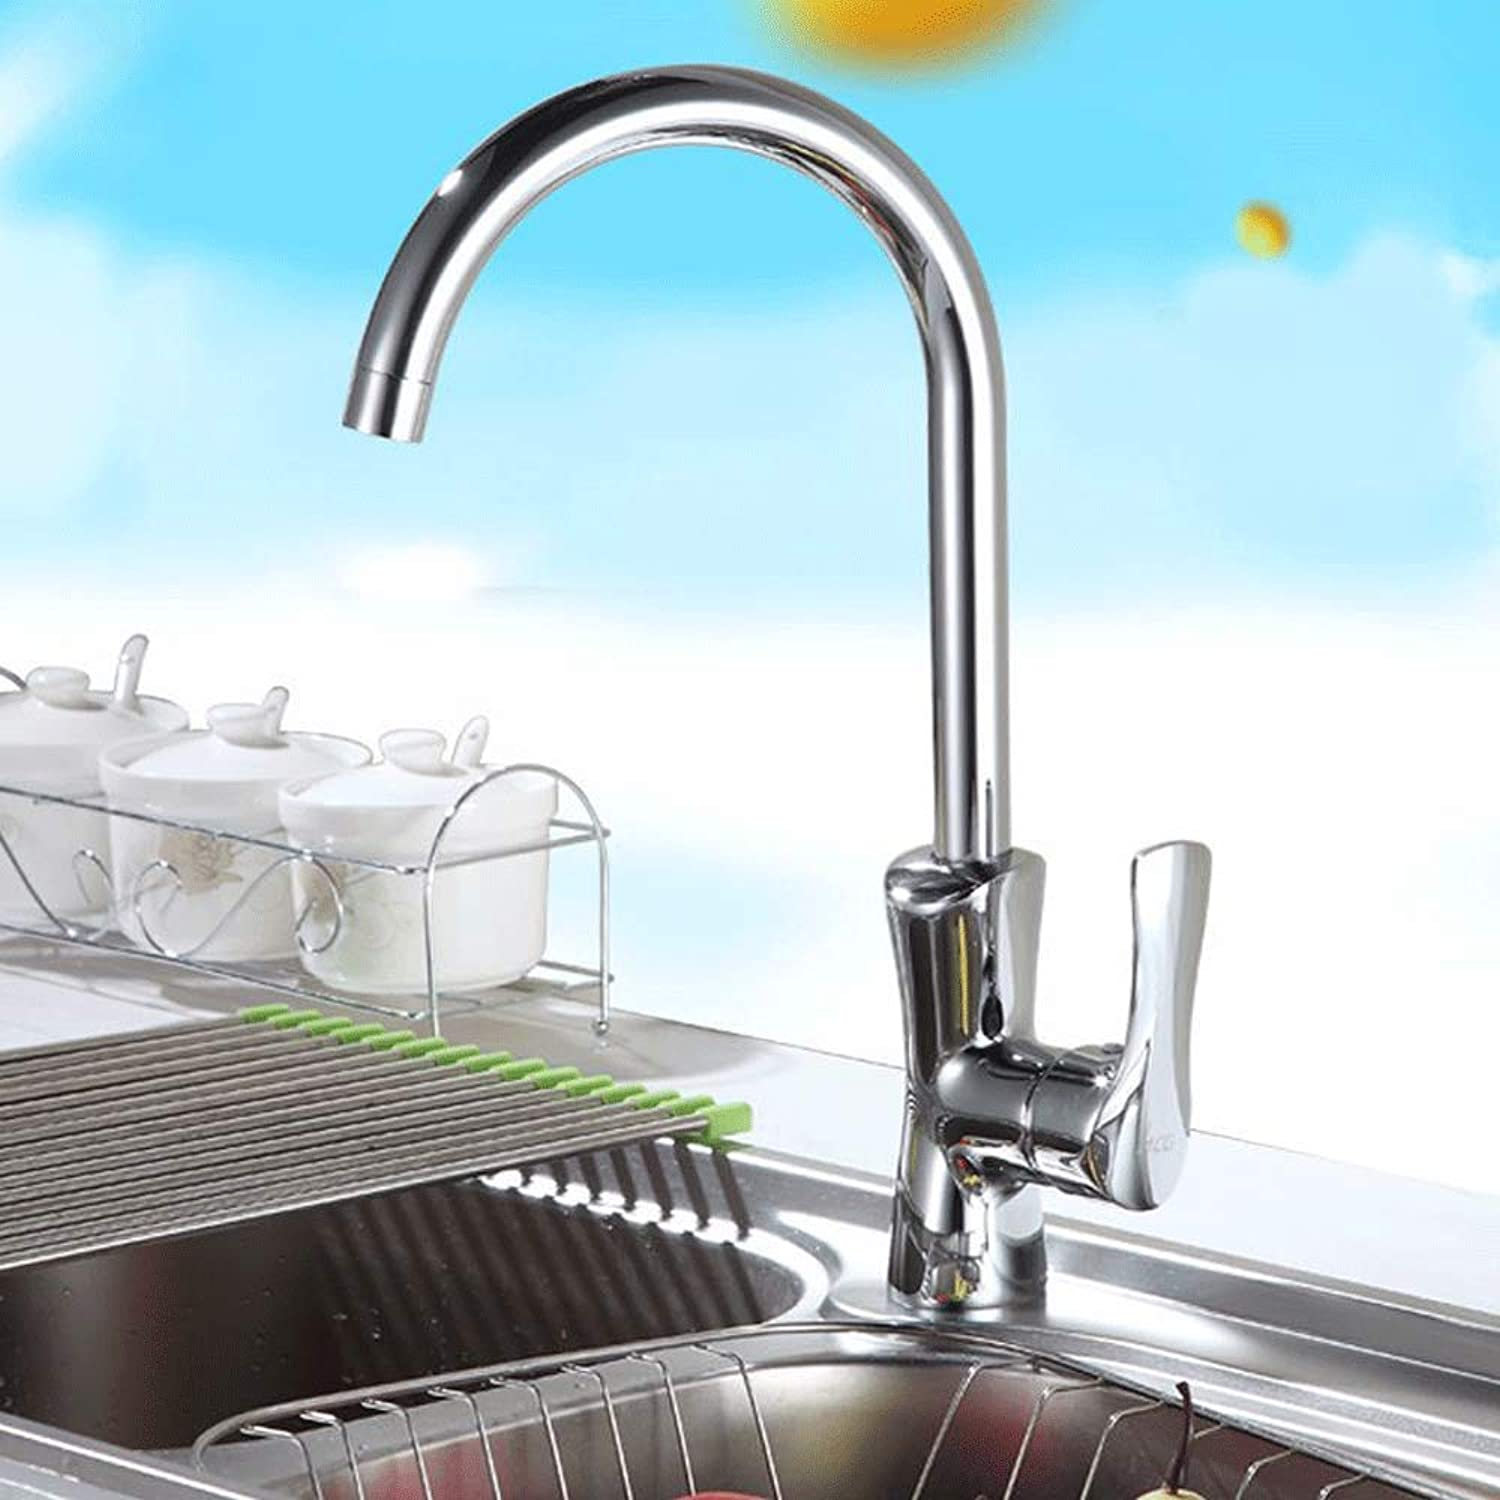 Fire wolf - faucet: Kitchen Faucet high Standard Cold Sink, Vegetable Washing Basin Faucet